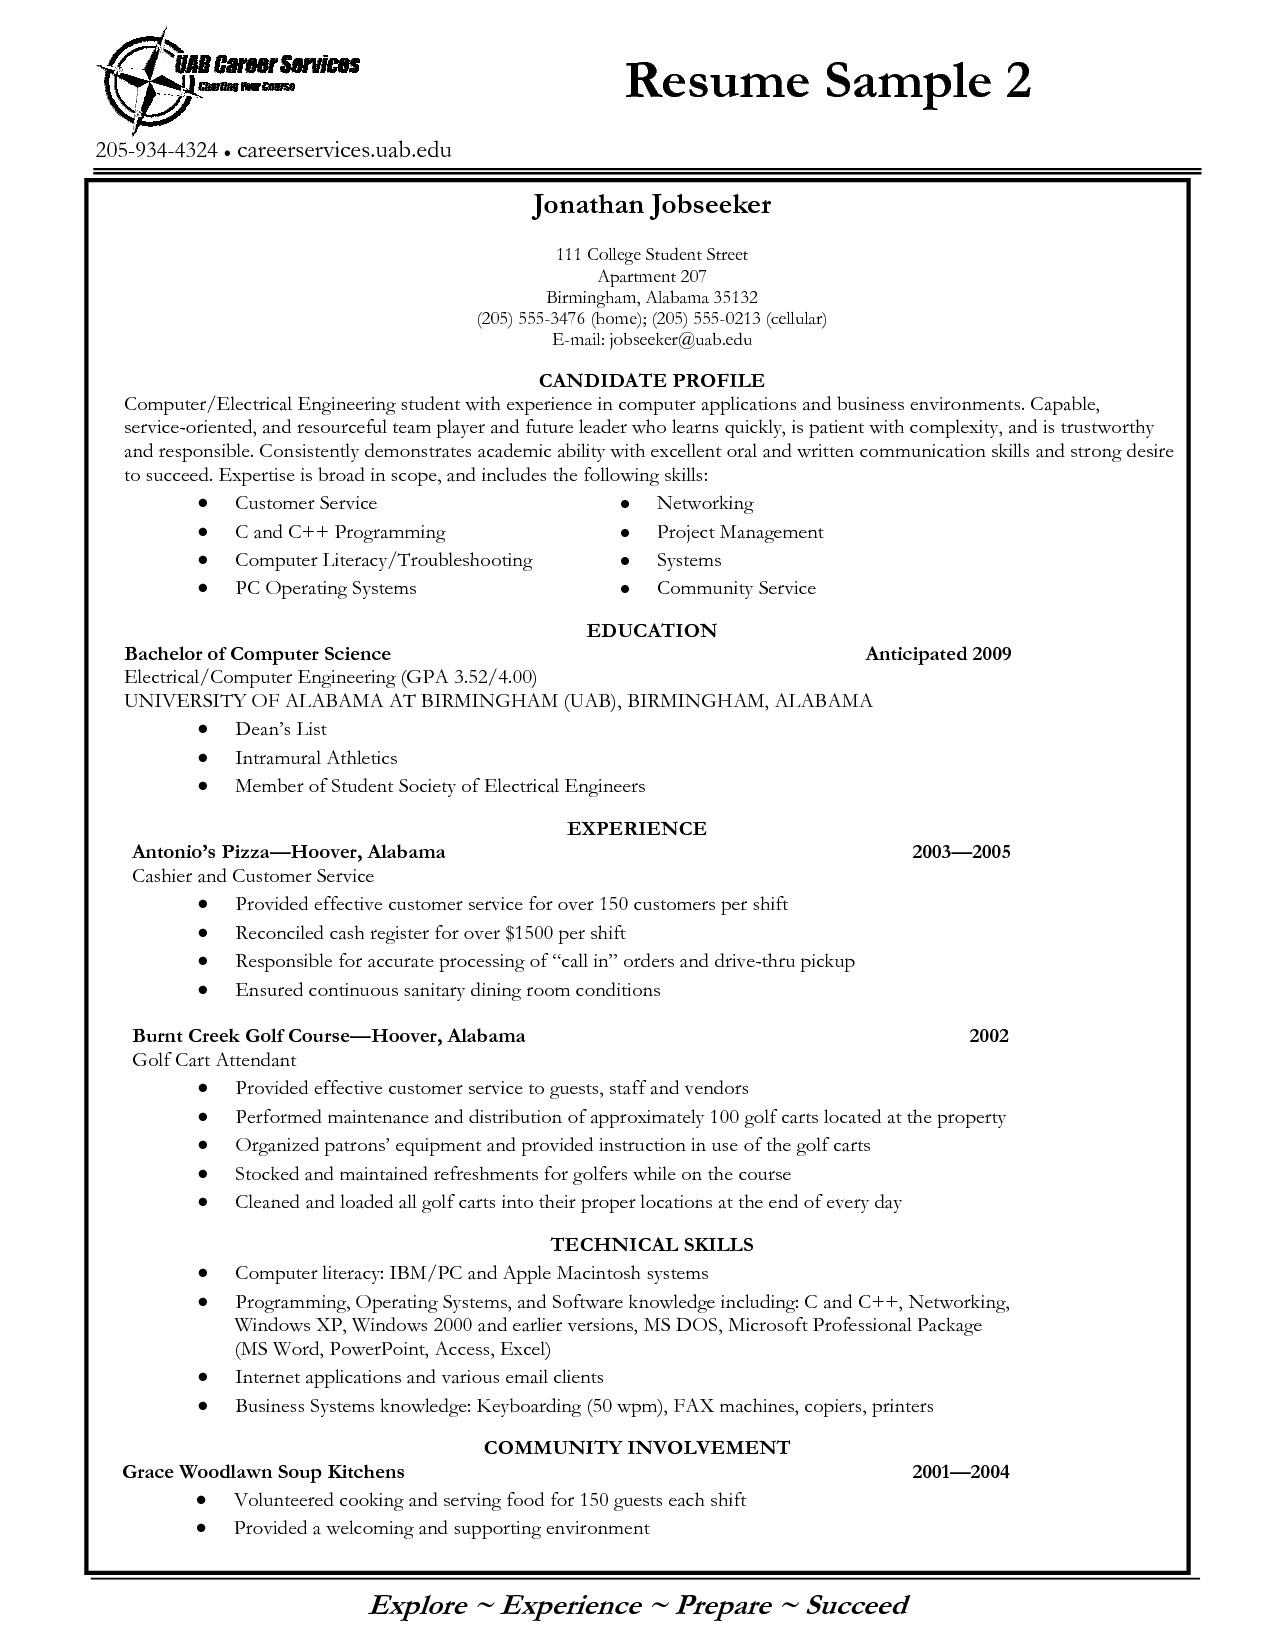 Resume Examples For High School Students Applying To CollegeResume Examples  Job Letter Sample  College Resume For High School Students